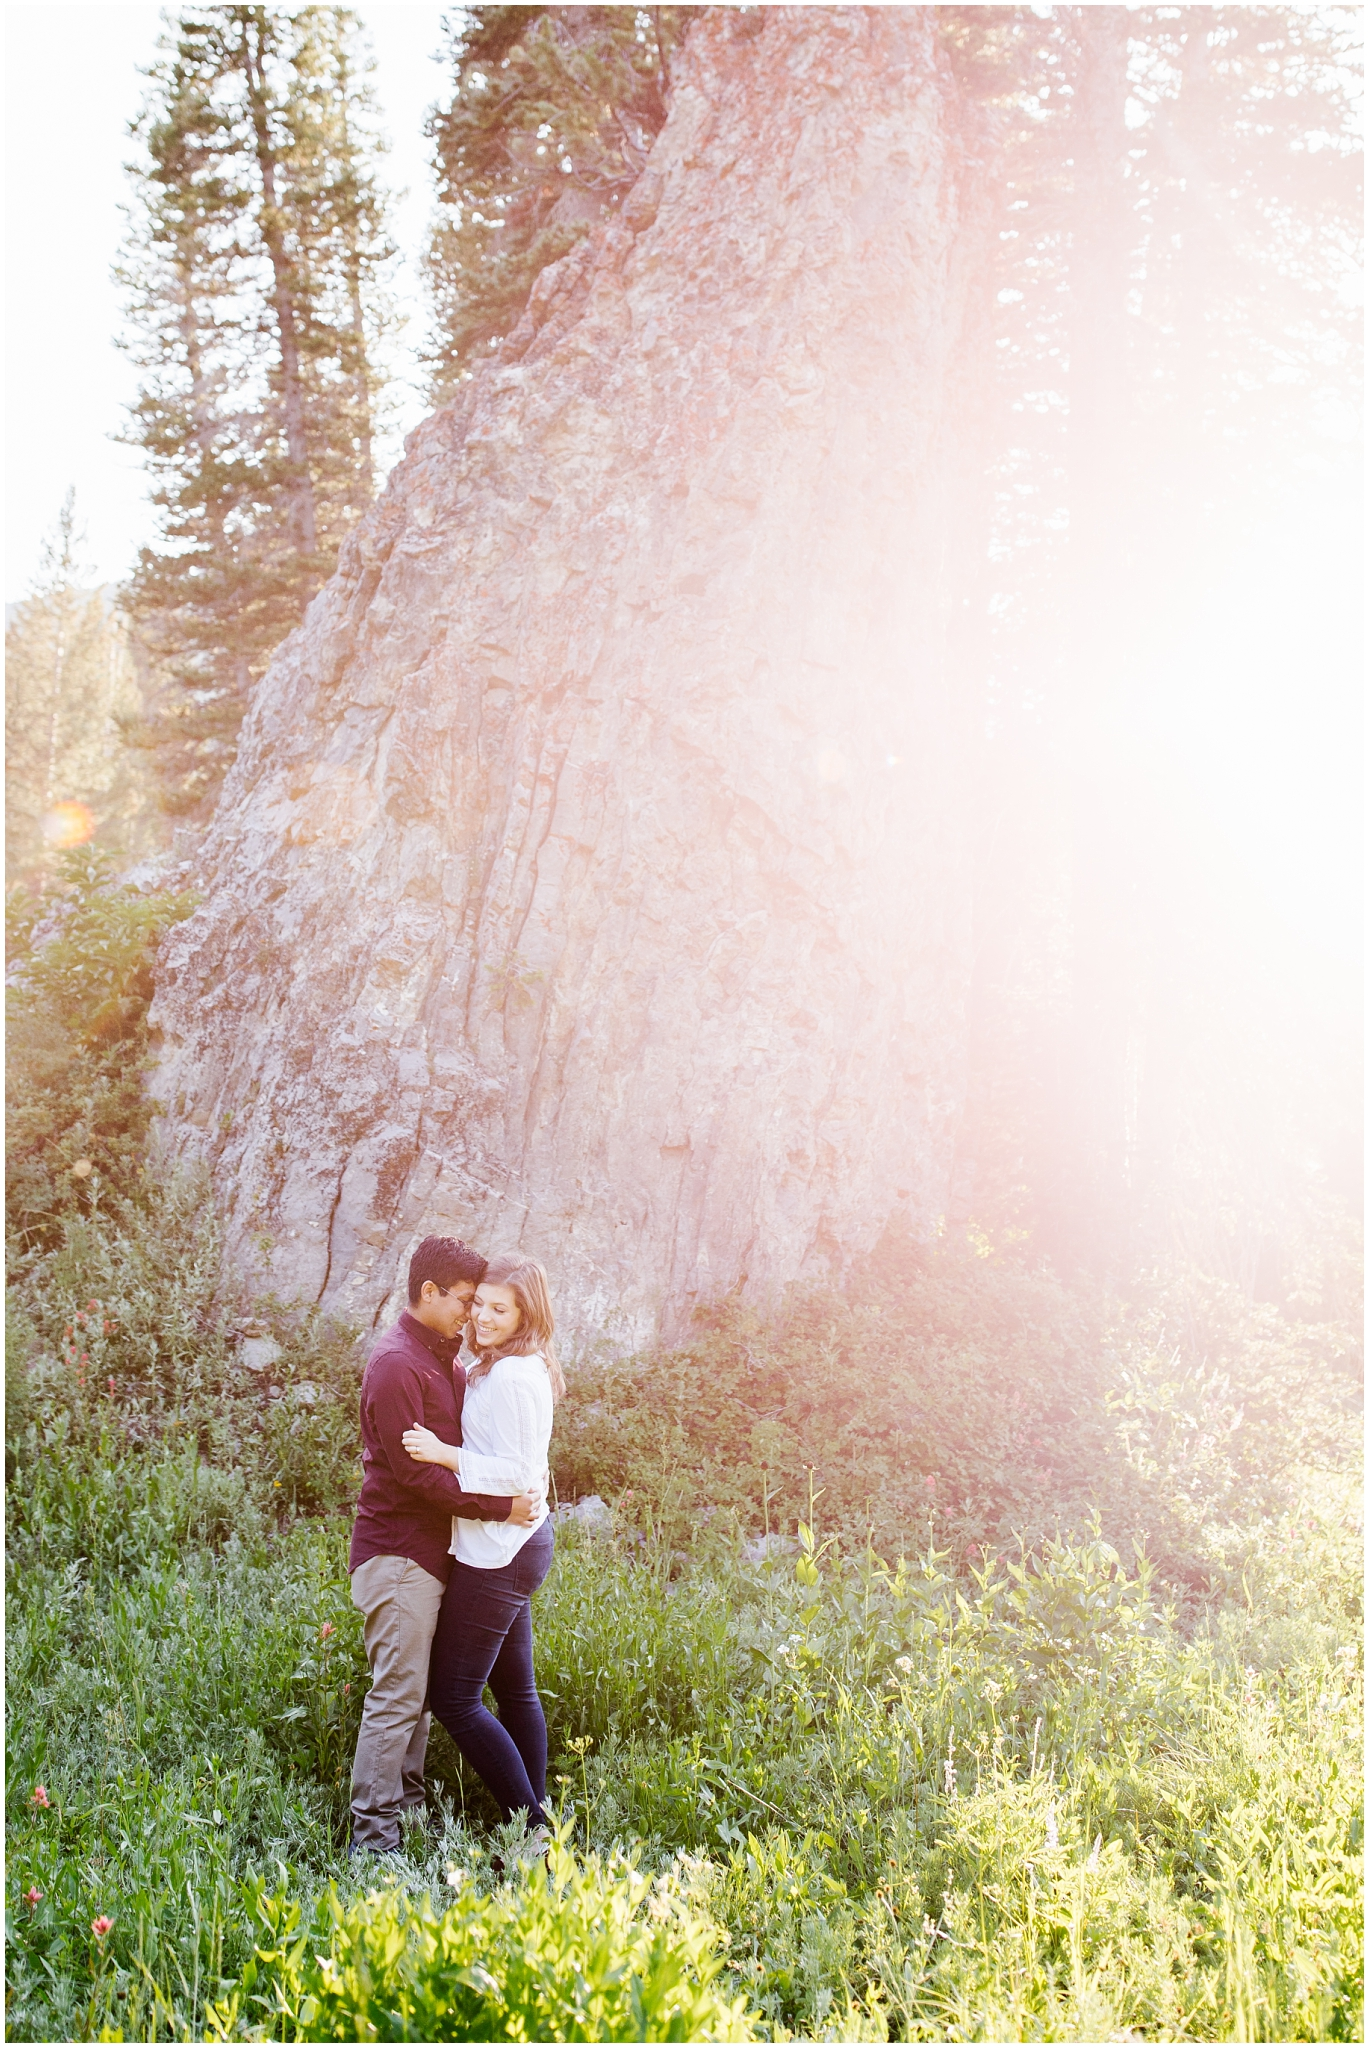 Harold and Emma-15_Lizzie-B-Imagery-Utah-Wedding-Photographer-Park-City-Salt-Lake-City-Albion-Basin-Engagement-Session.jpg